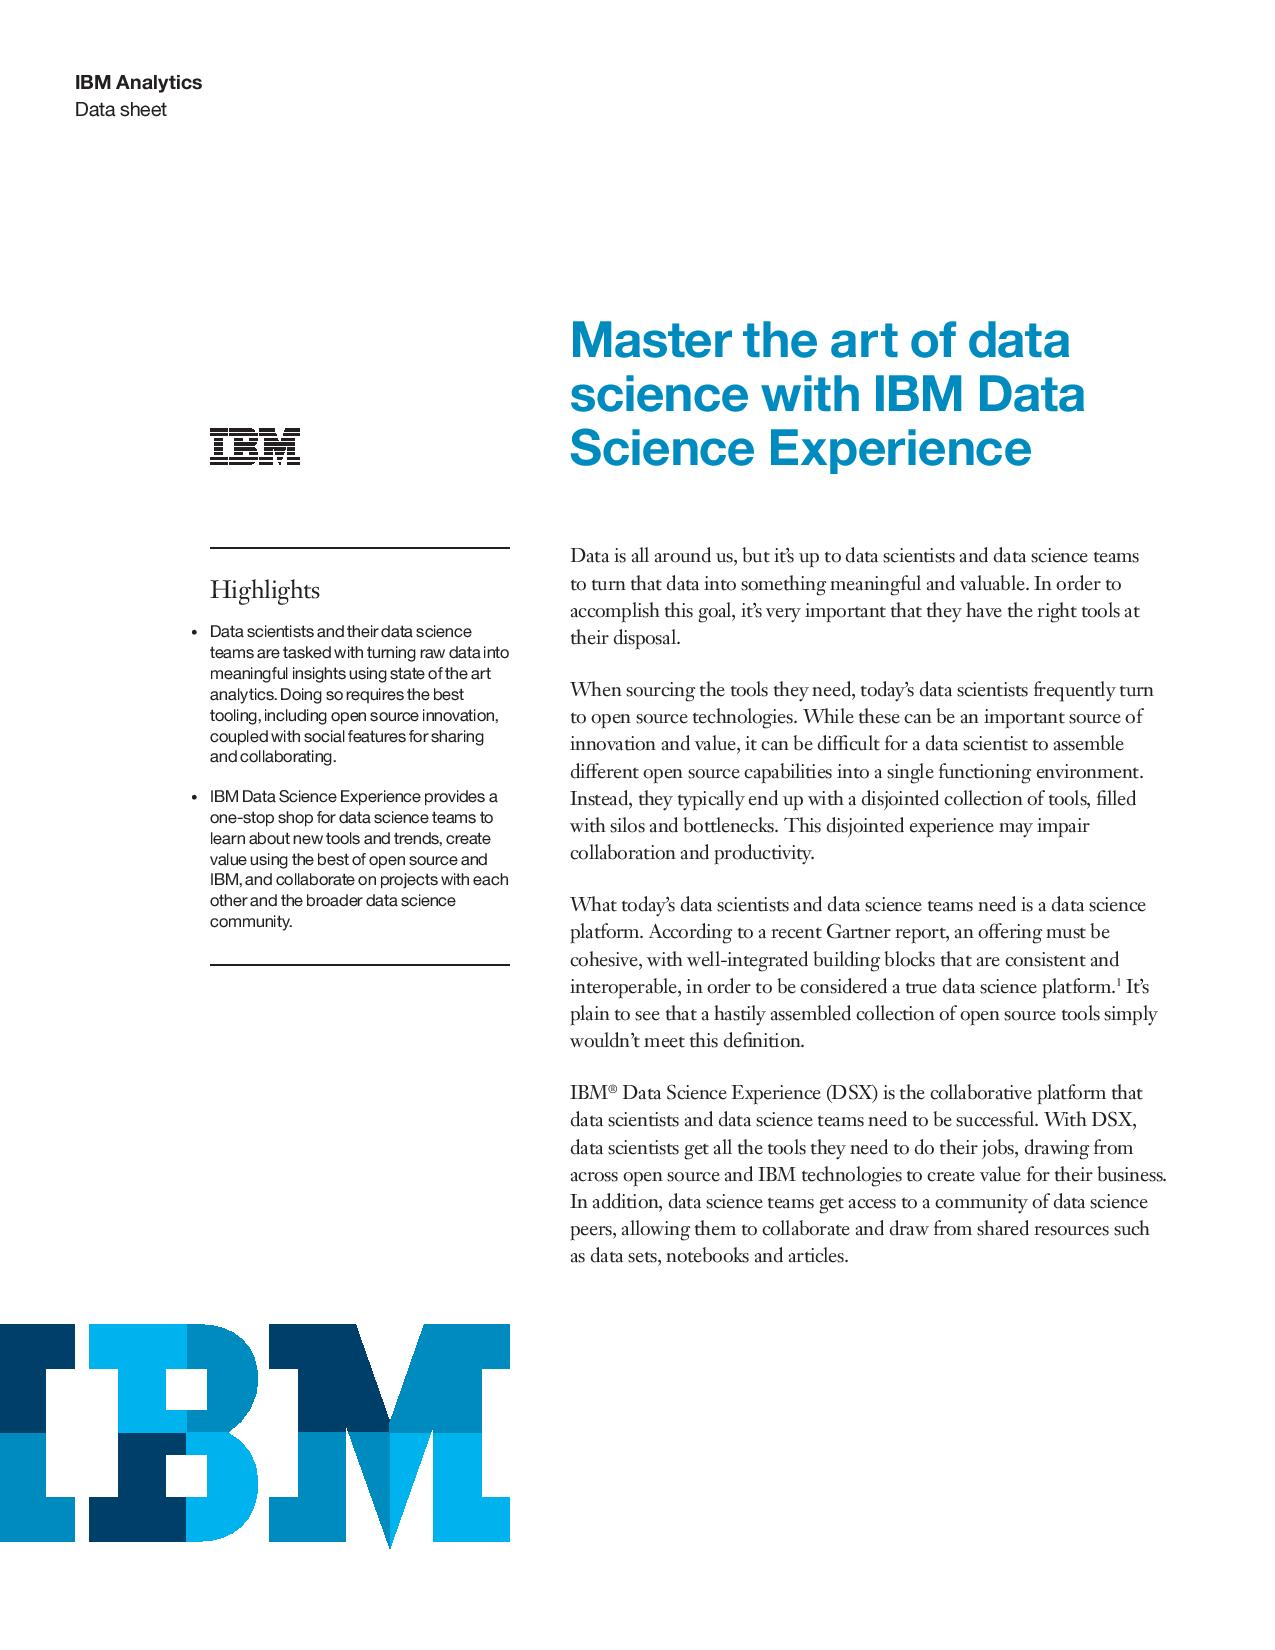 Master the art of data science with IBM Data Science Experience